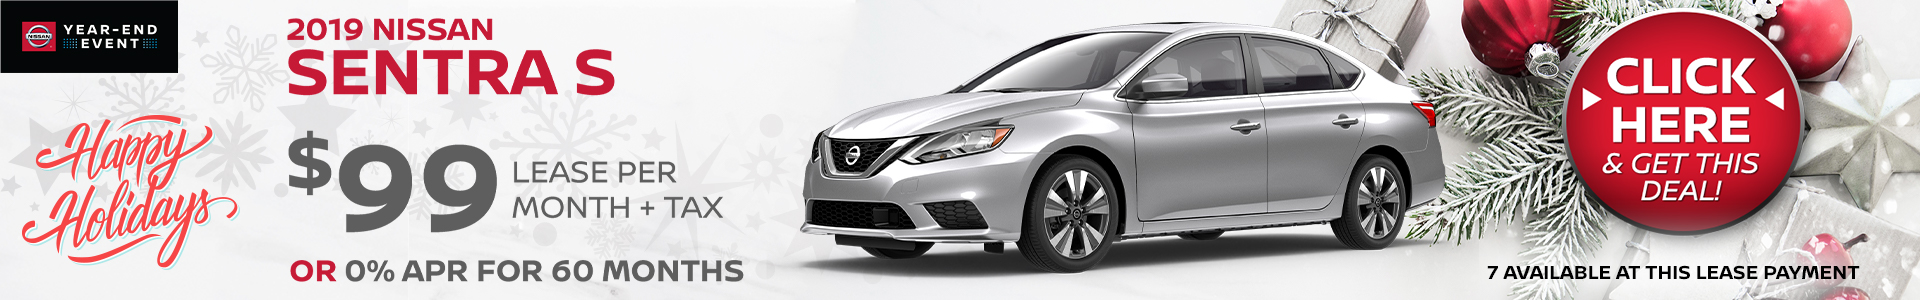 Mossy Nissan - Nissan Sentra $99 Lease